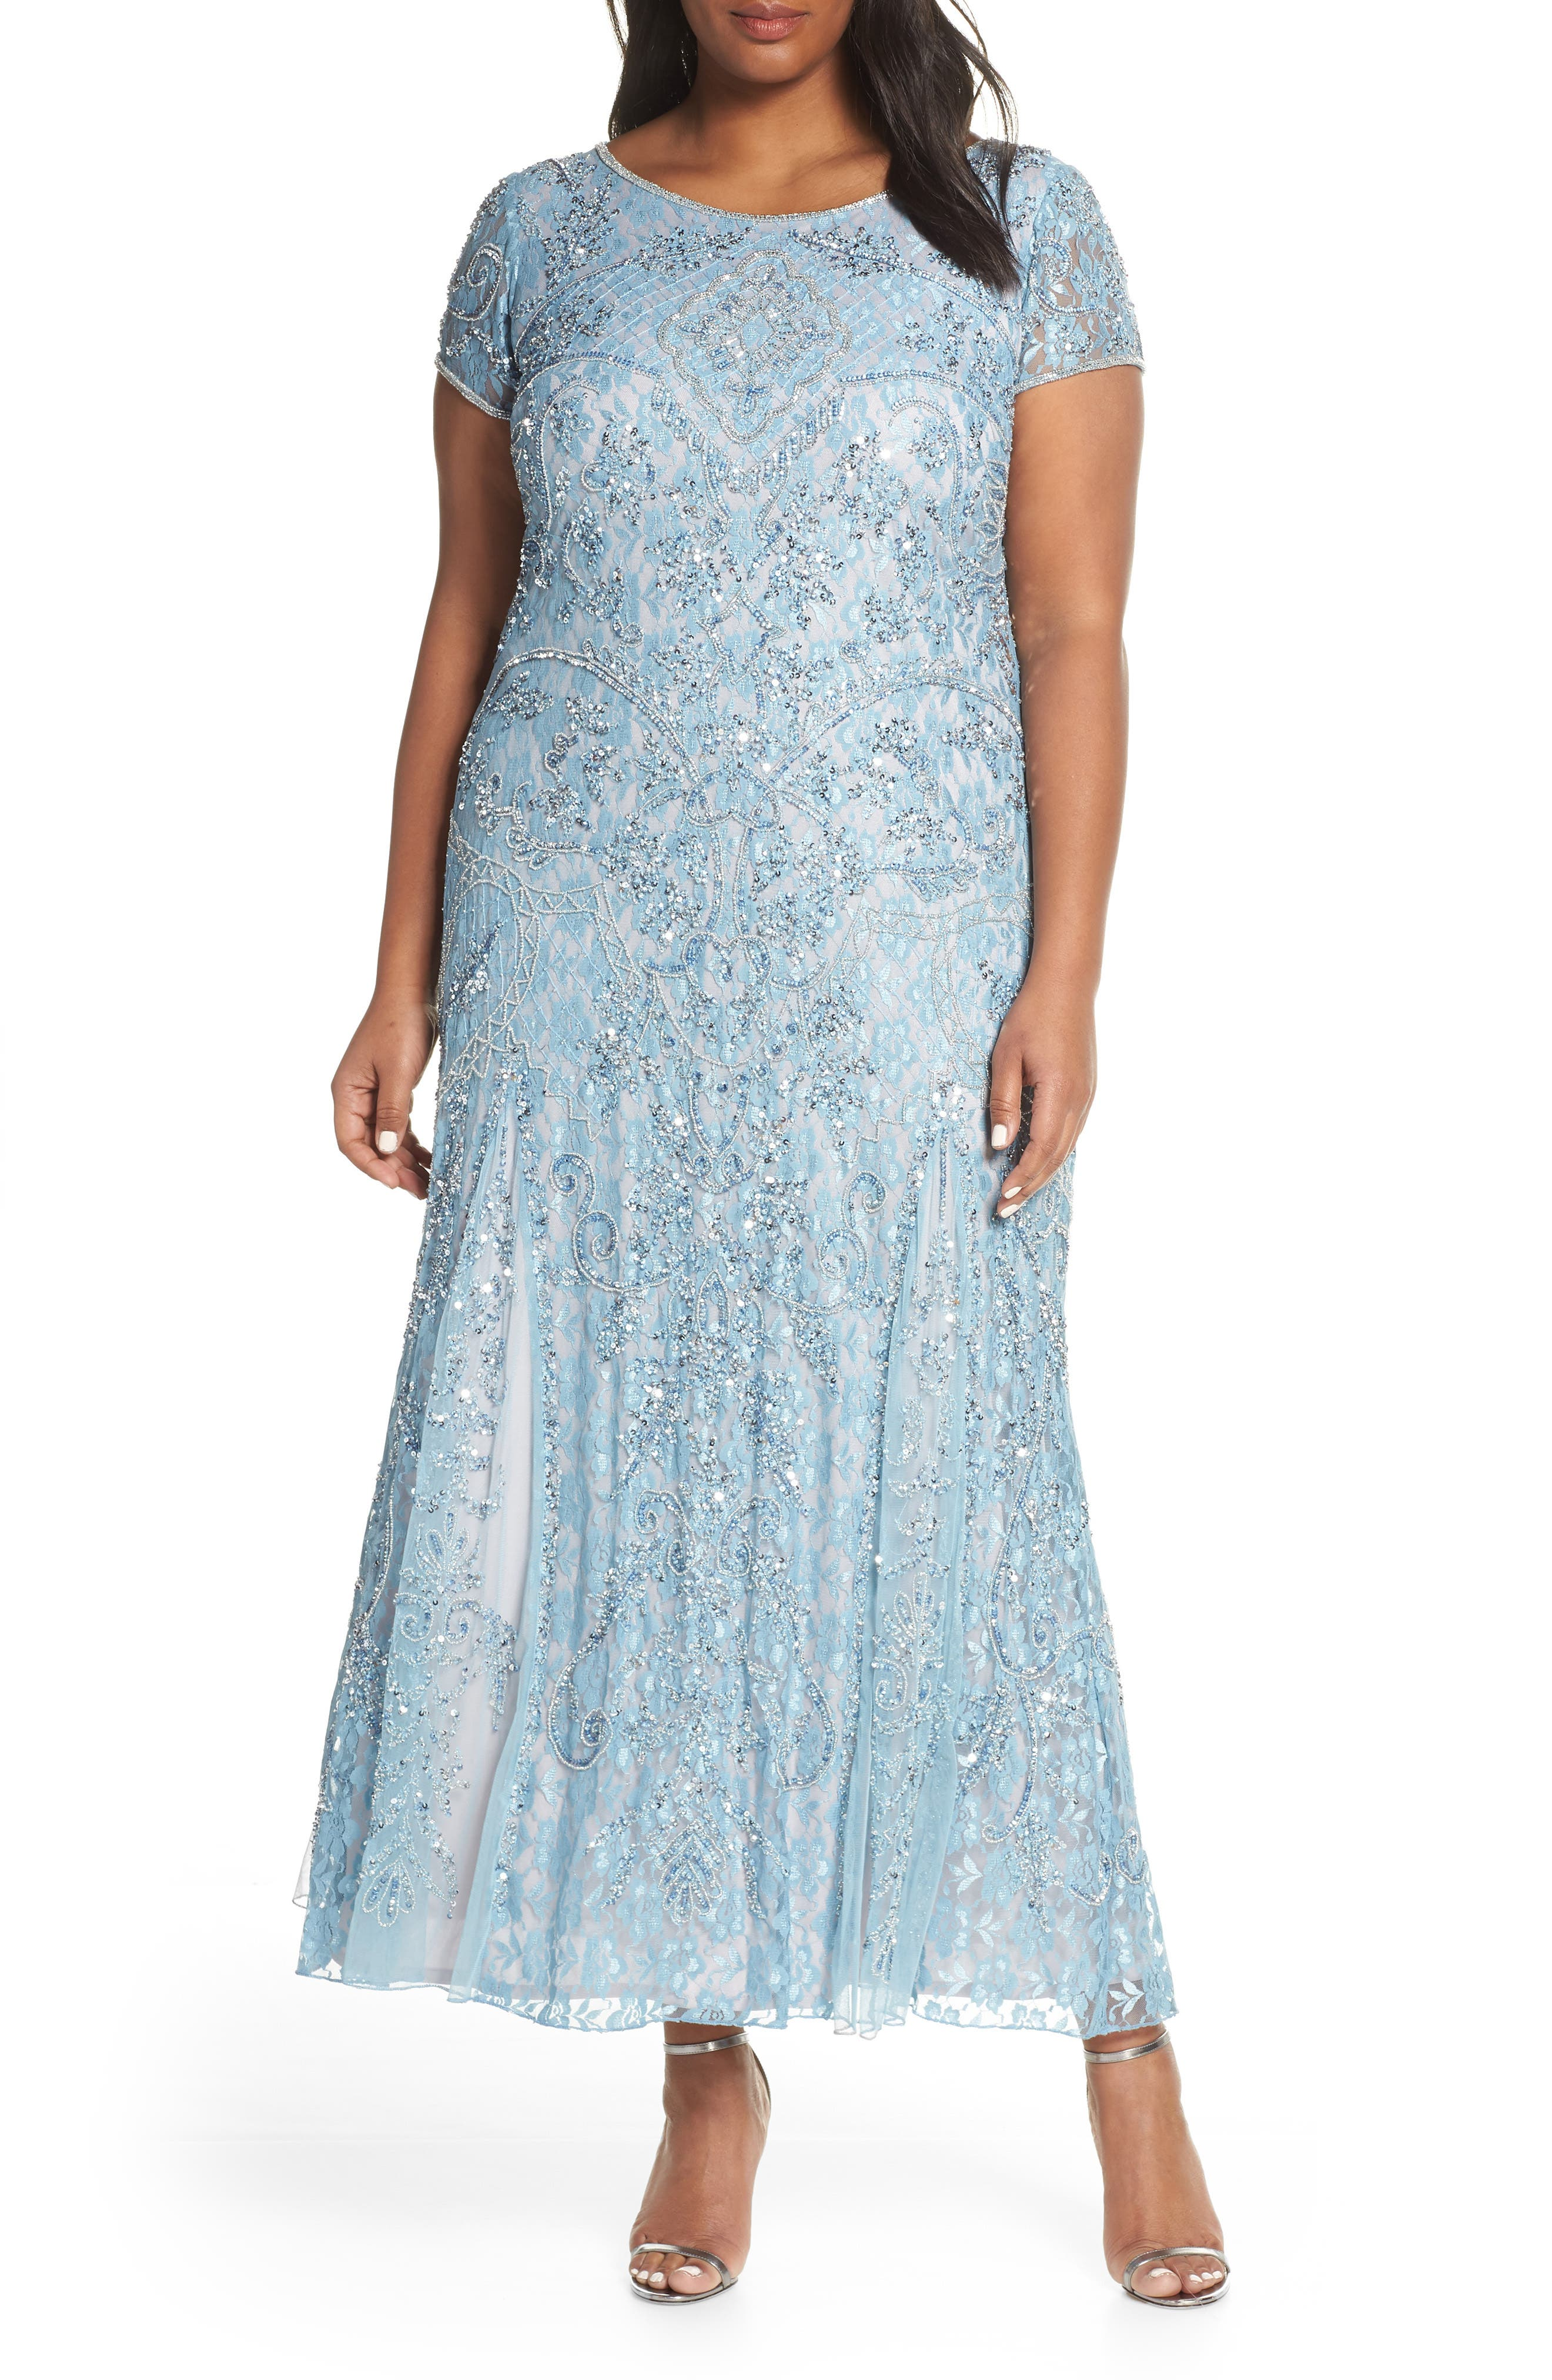 PISARRO NIGHTS,                             Embellished Lace A-Line Dress,                             Main thumbnail 1, color,                             SKY BLUE